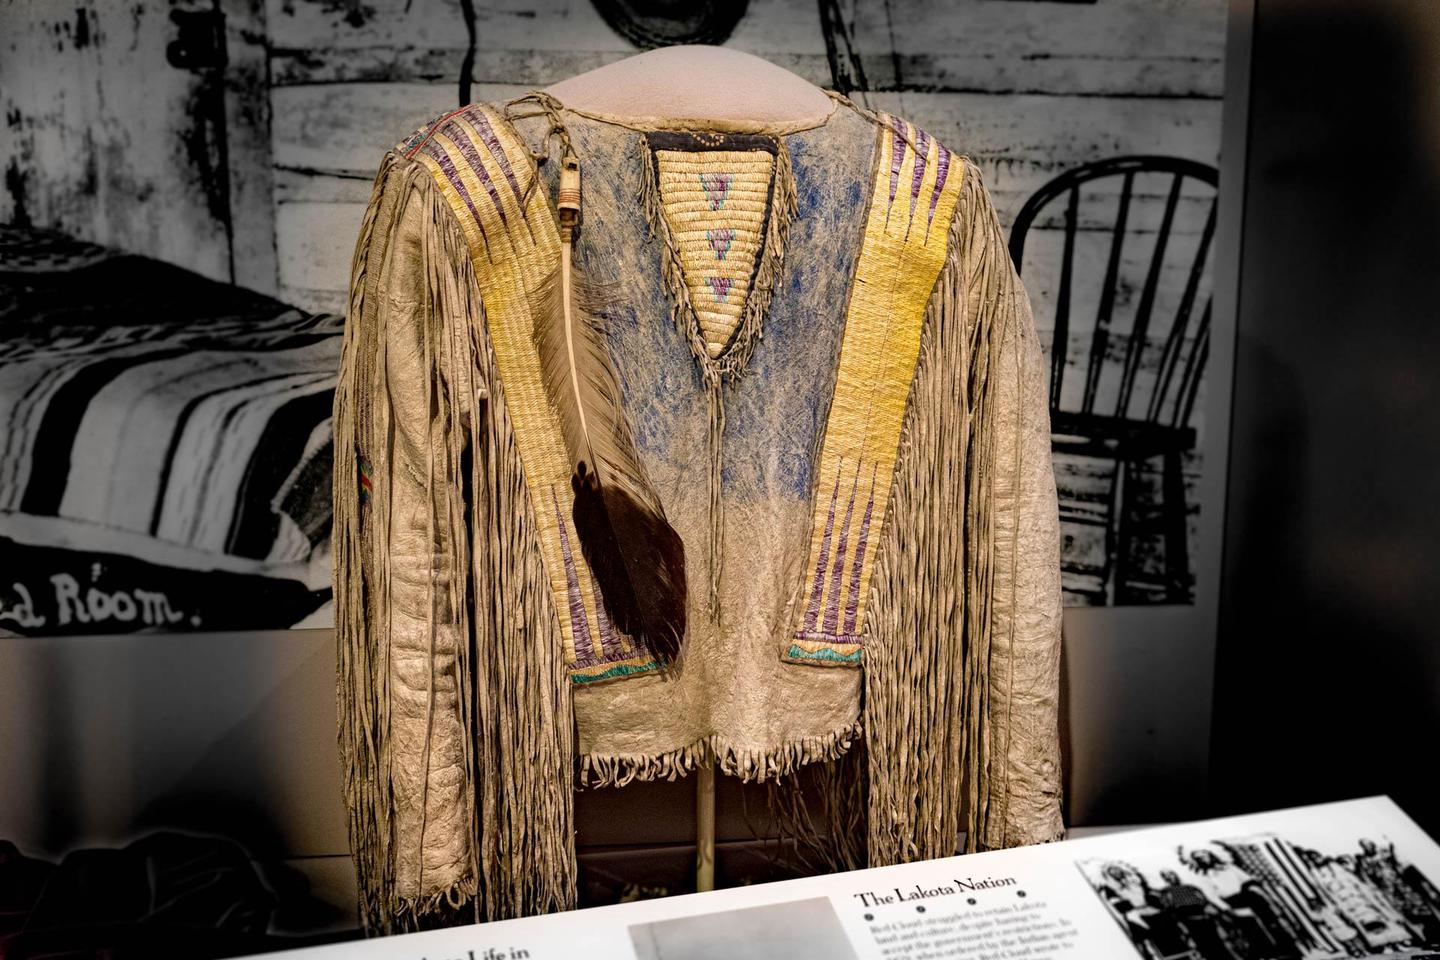 Chief Red Cloud's ShirtLakota Sioux Chief Red Cloud was close friends with rancher James H. Cook, and many historically significant belongings were exchanged as gifts. Including his shirt, now considered of the top 100 most culturally significant artifacts in the country.